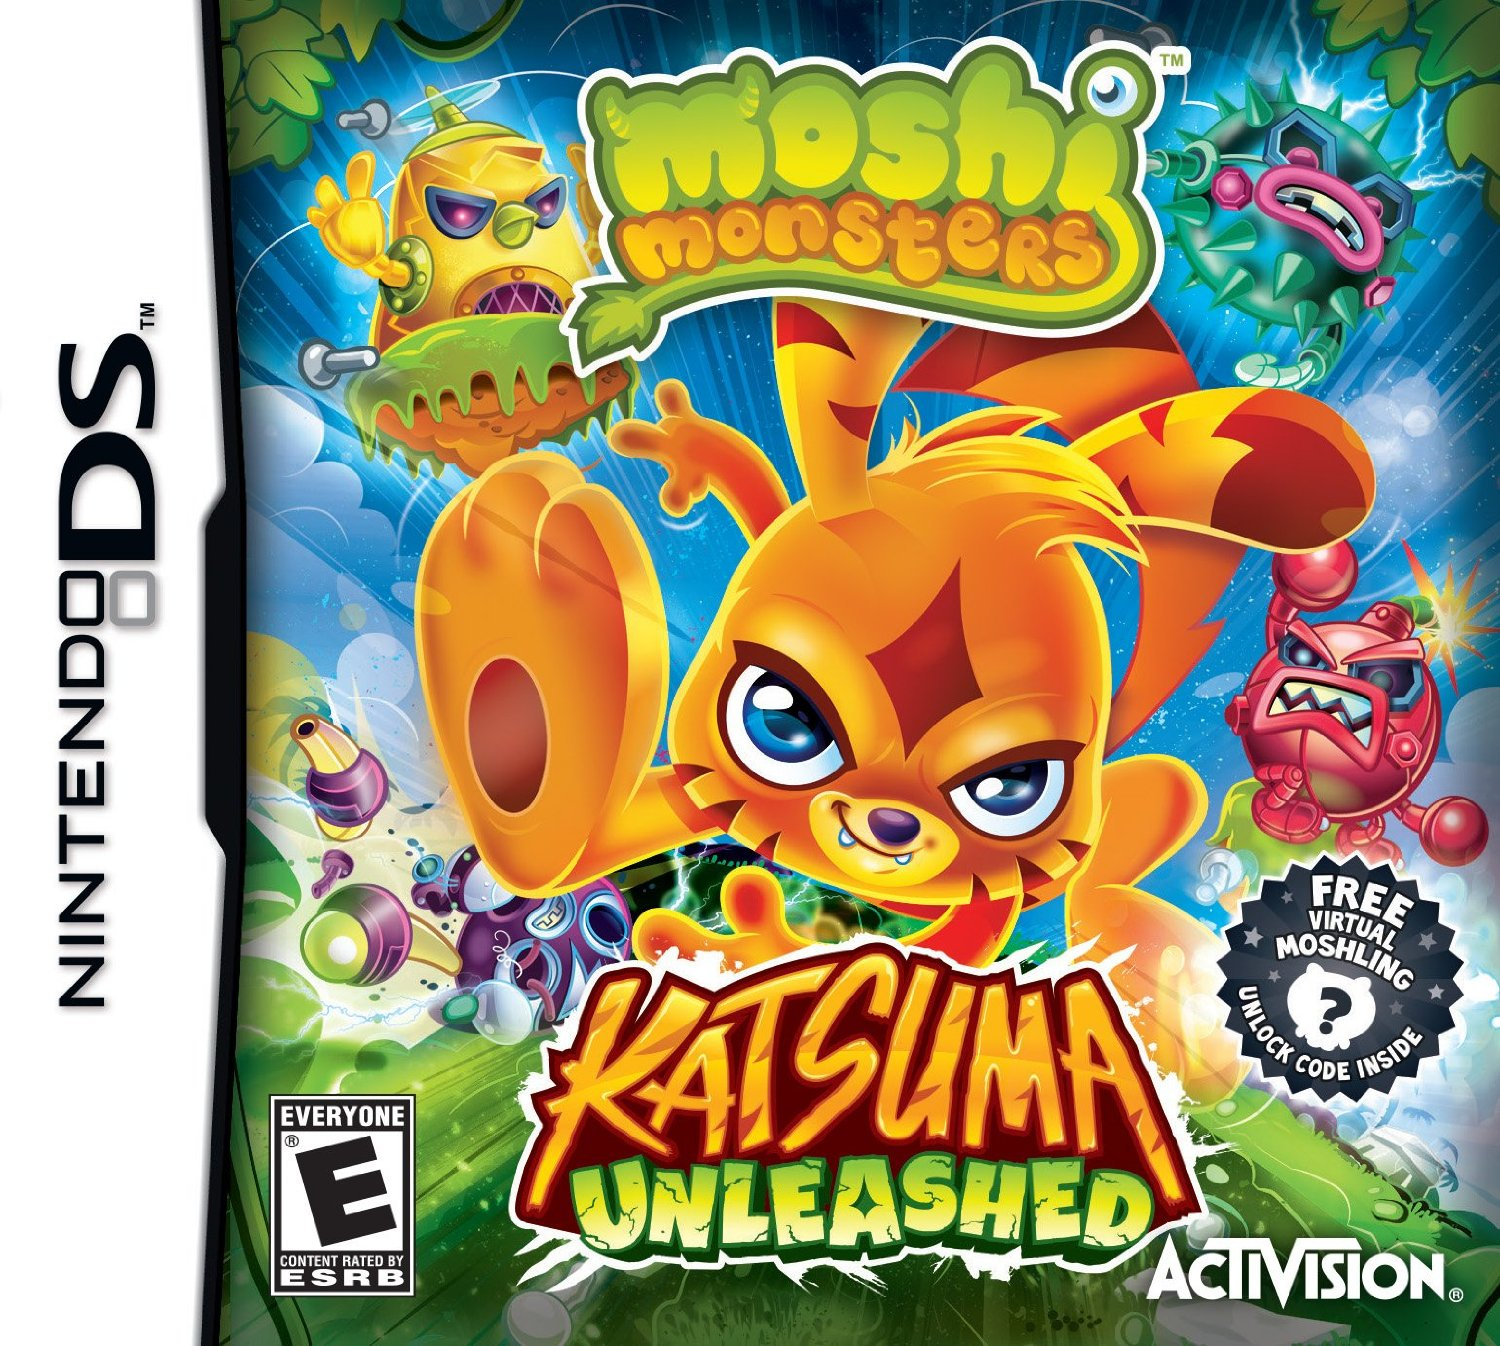 Moshi Monsters : Katsuma Unleashed